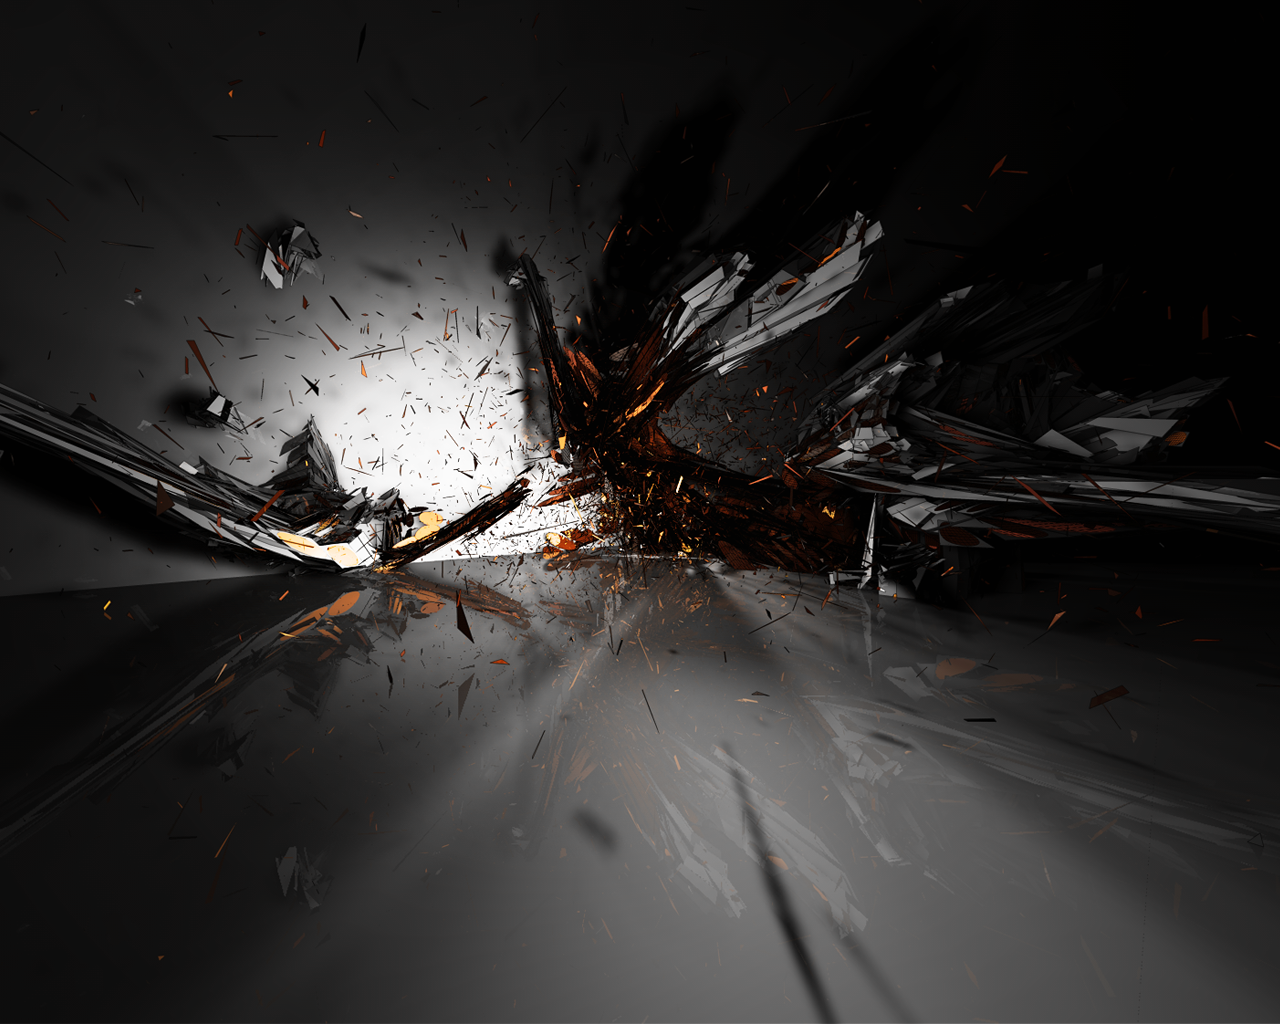 http://4.bp.blogspot.com/-nPLEwscUGe0/TrkxhH6e70I/AAAAAAAAD4k/KrdzAeV4-3w/s1600/Abstract-HD-Wallpapers-2.png